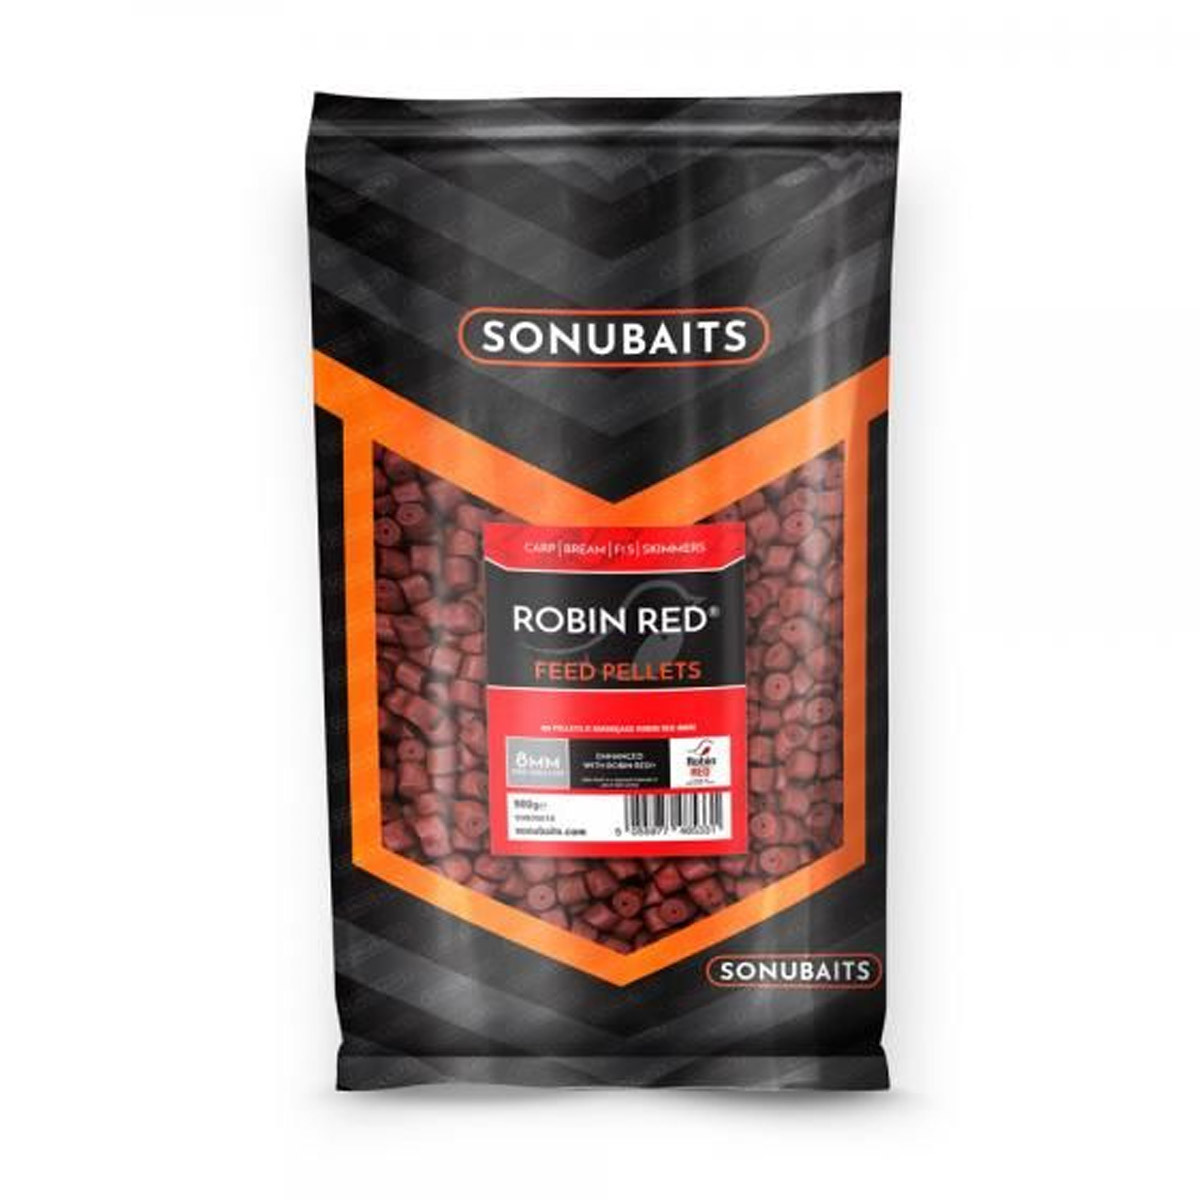 Sonubaits Robin Red Feed Pellets Pre-Drilled